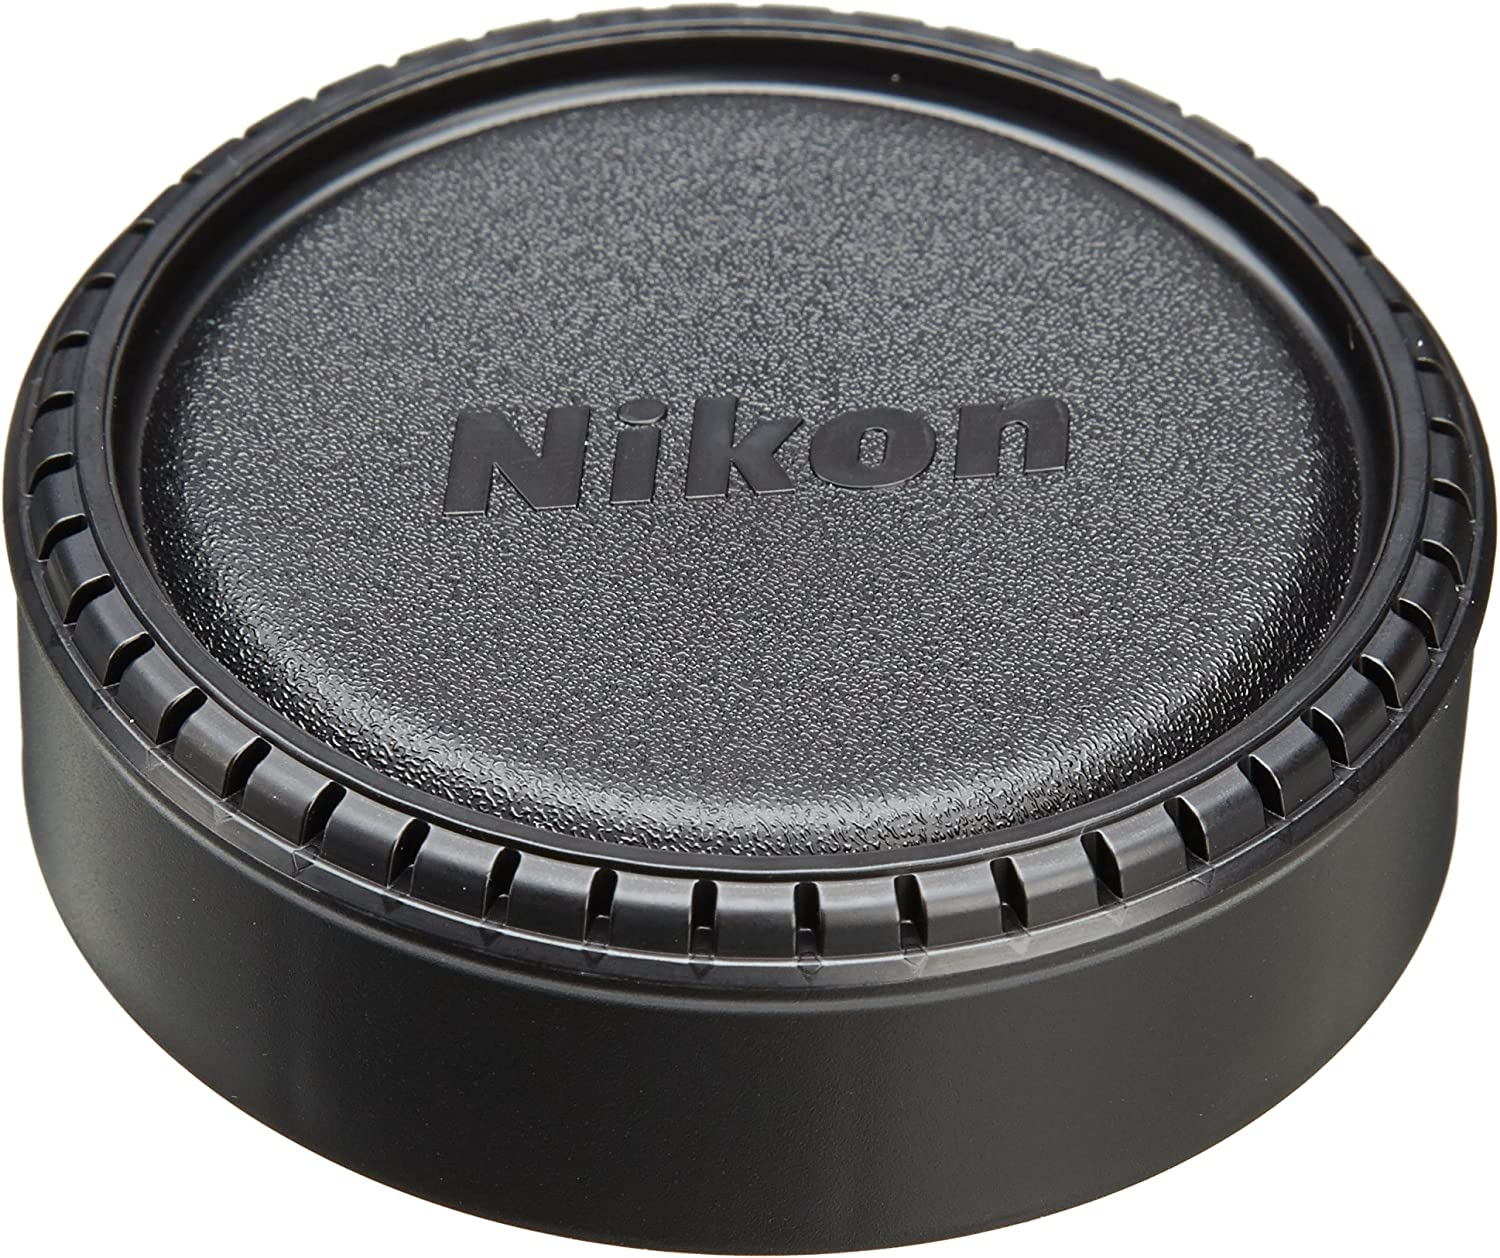 Nikon Slip-ON All items in the store Front Lens Cap 10.5DX F mart 2.8 16